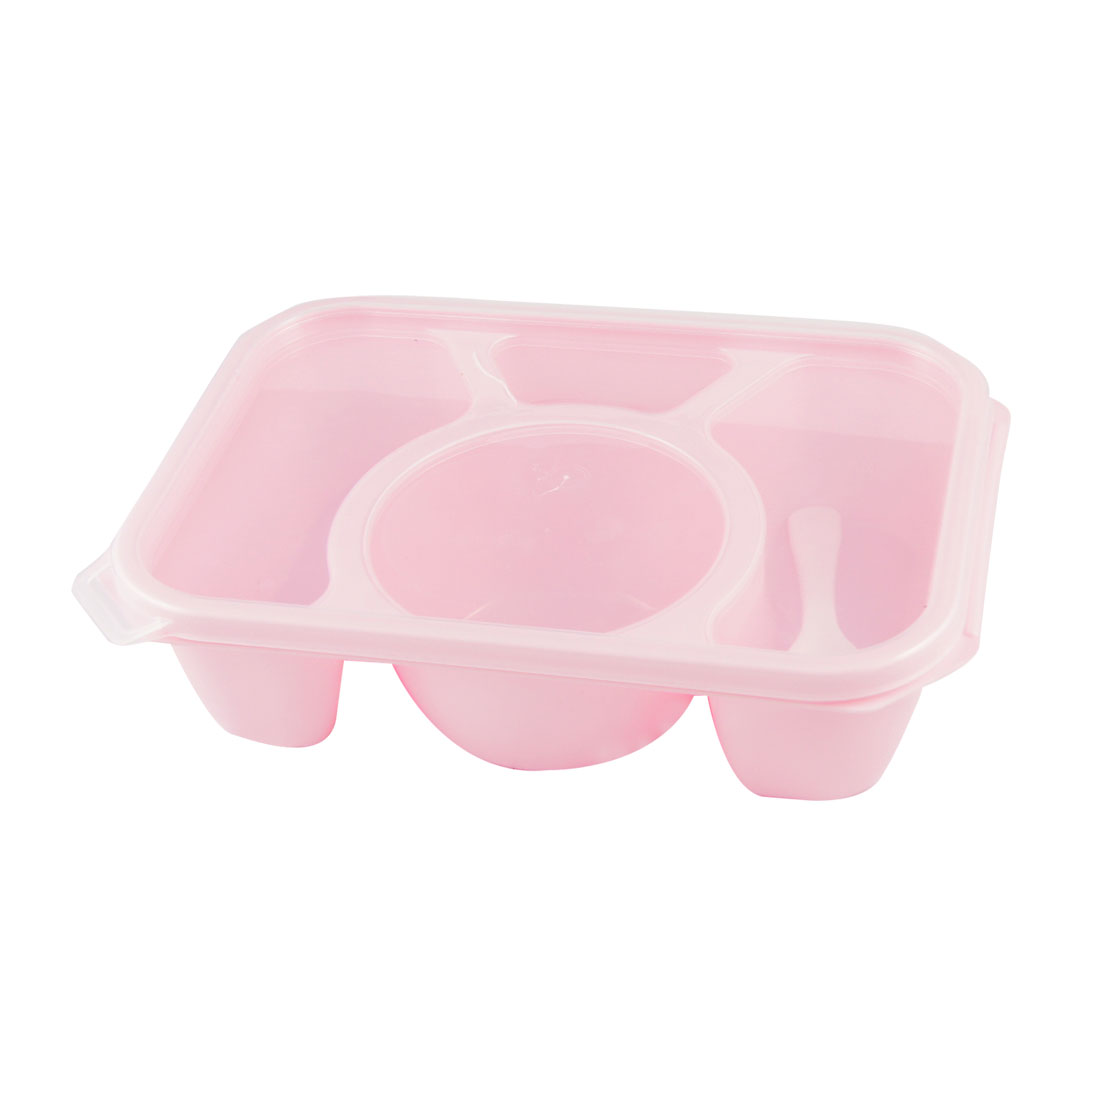 Plastic 4 Compartments Meal Lunch Box Pink Clear w Spoon